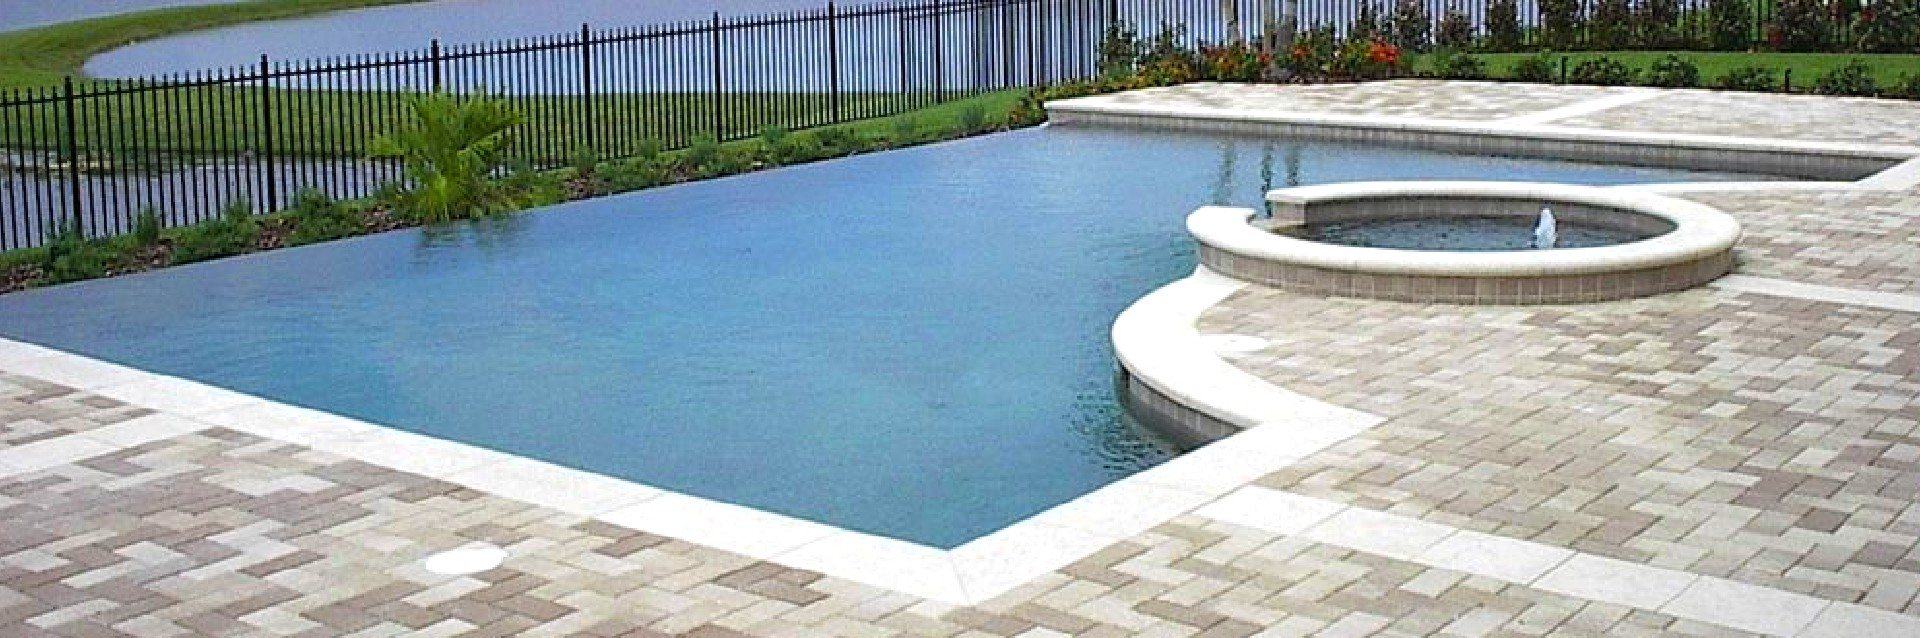 Aquascape Pools | Quality custom pools since 1989 in the ...